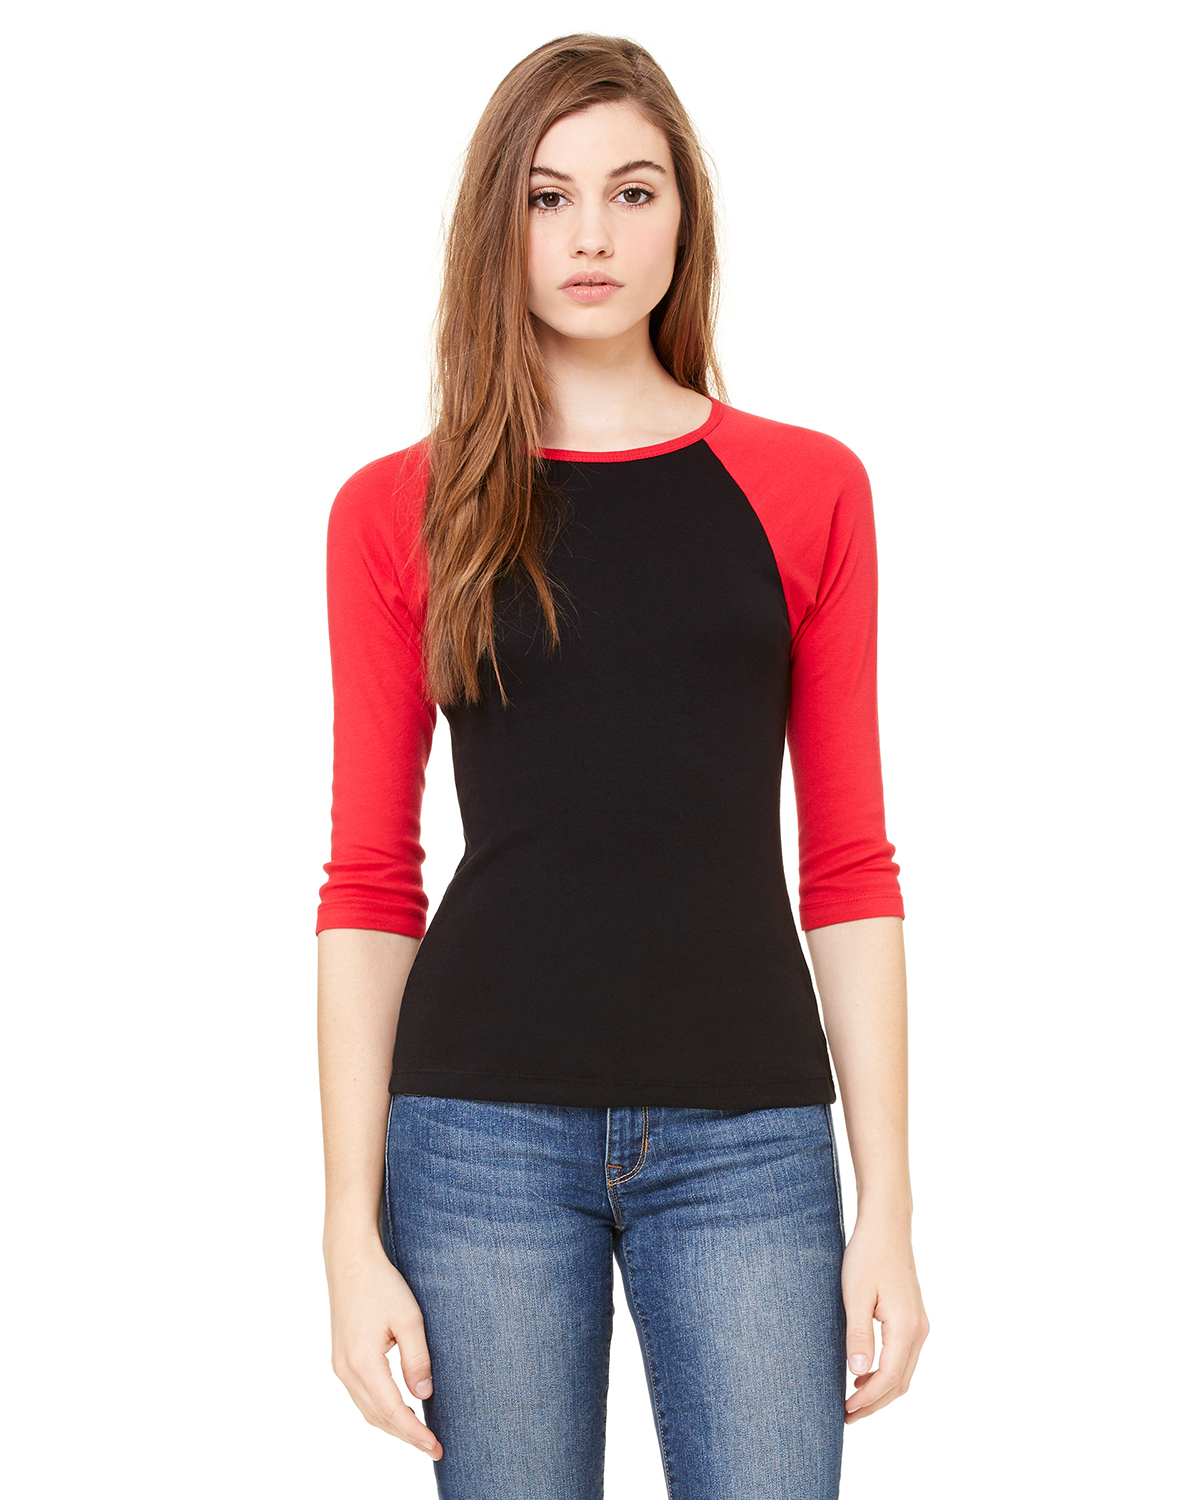 bella 2000 Ladies' 1x1 Rib 3/4 Sleeve Raglan T-Shirt